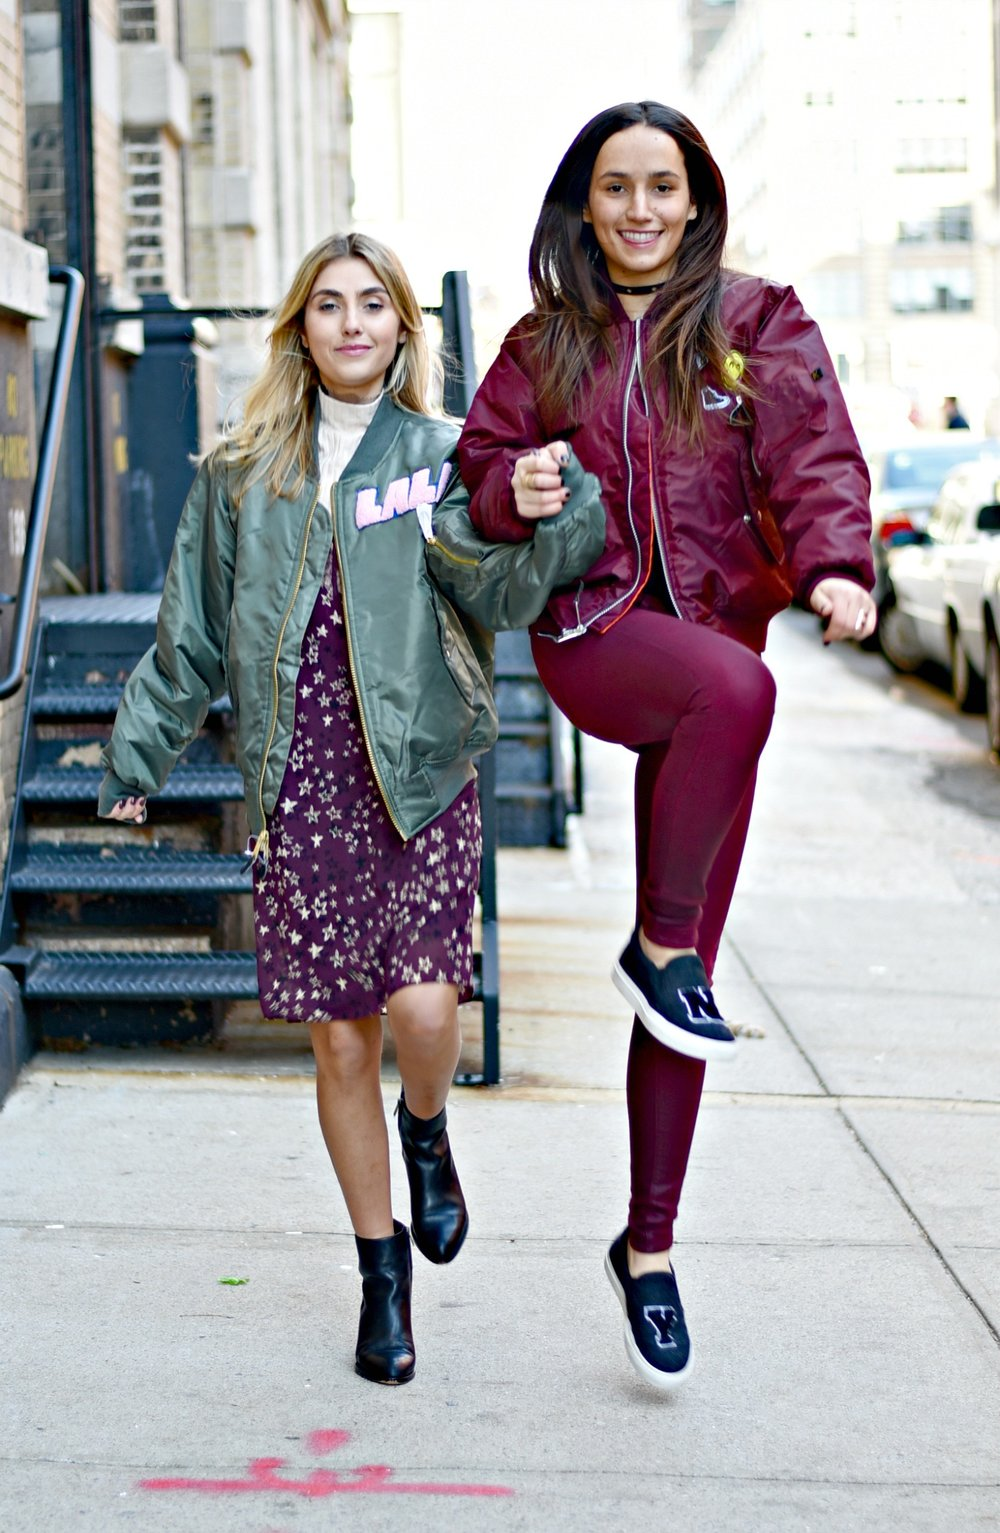 SOPHIE & CHARLOTTE BICKLEY YIN 2MY YANG SISTER FASHION BLOGGERS NYC UNEMPLOYED DENIM POST 1l.jpg